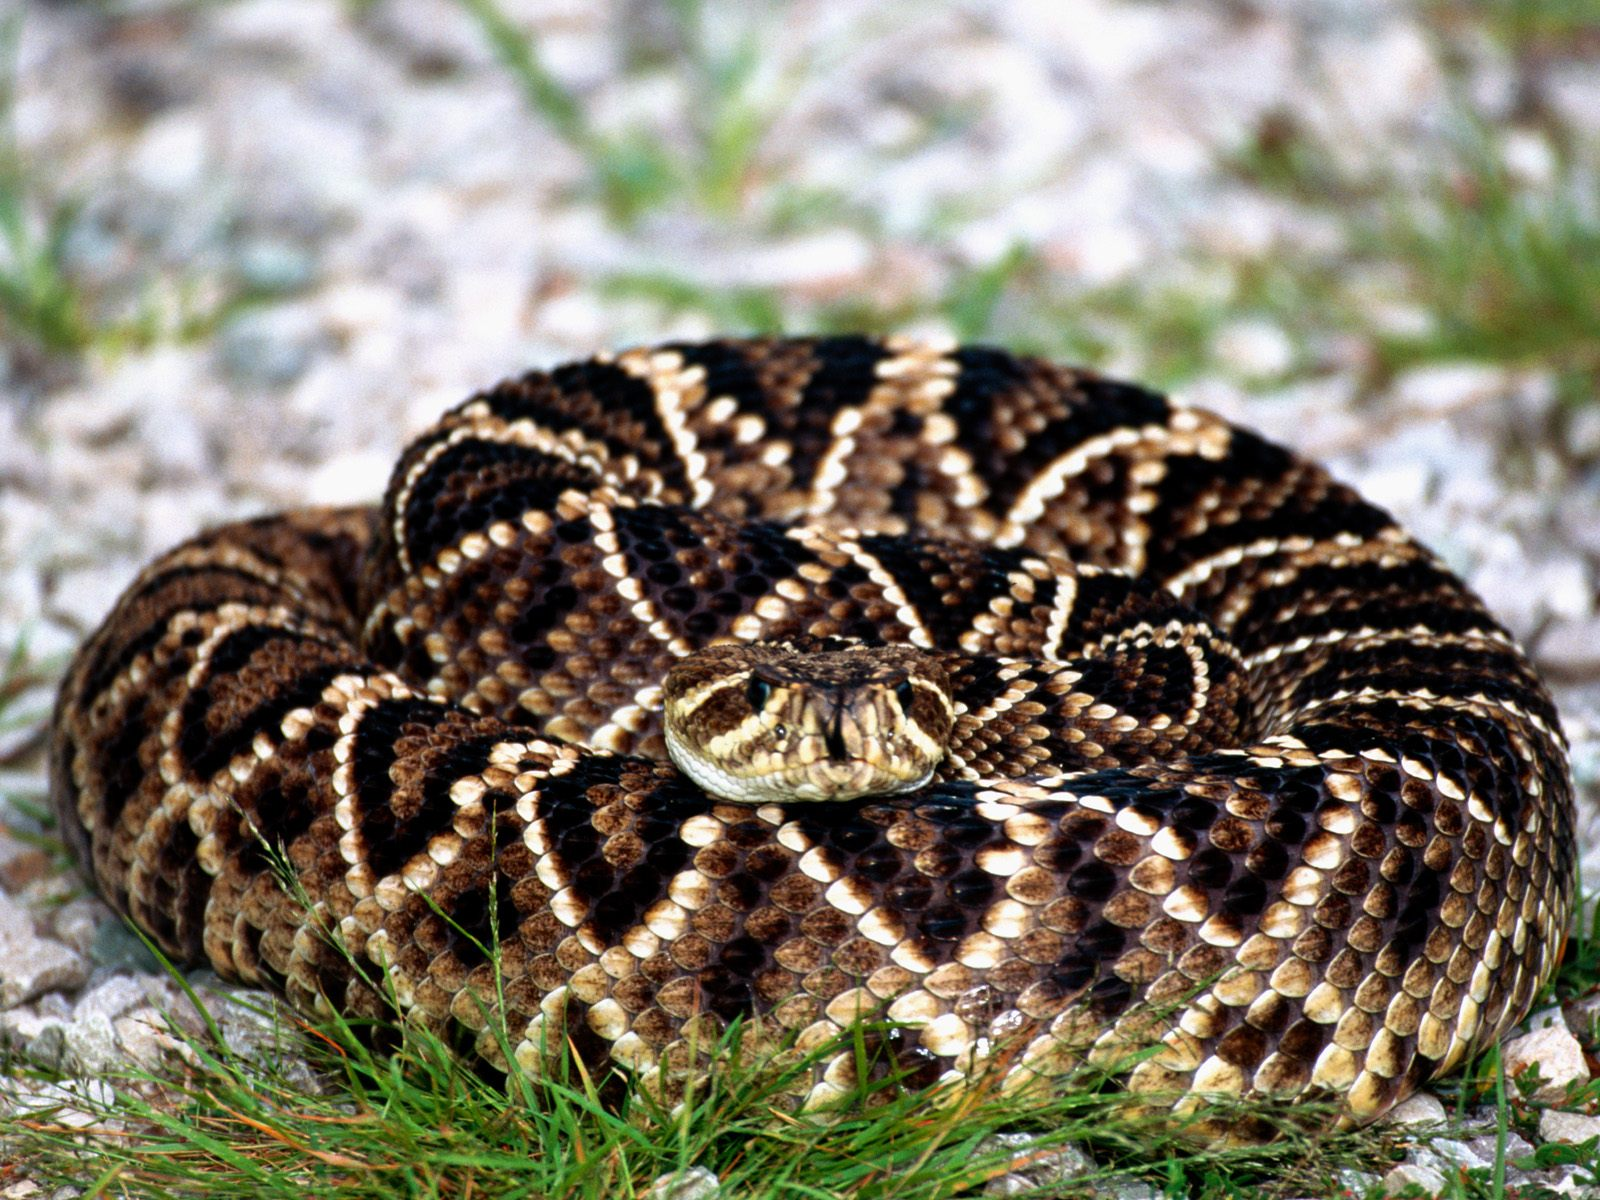 encountered two of these large eastern diamondback rattlesnakes ...